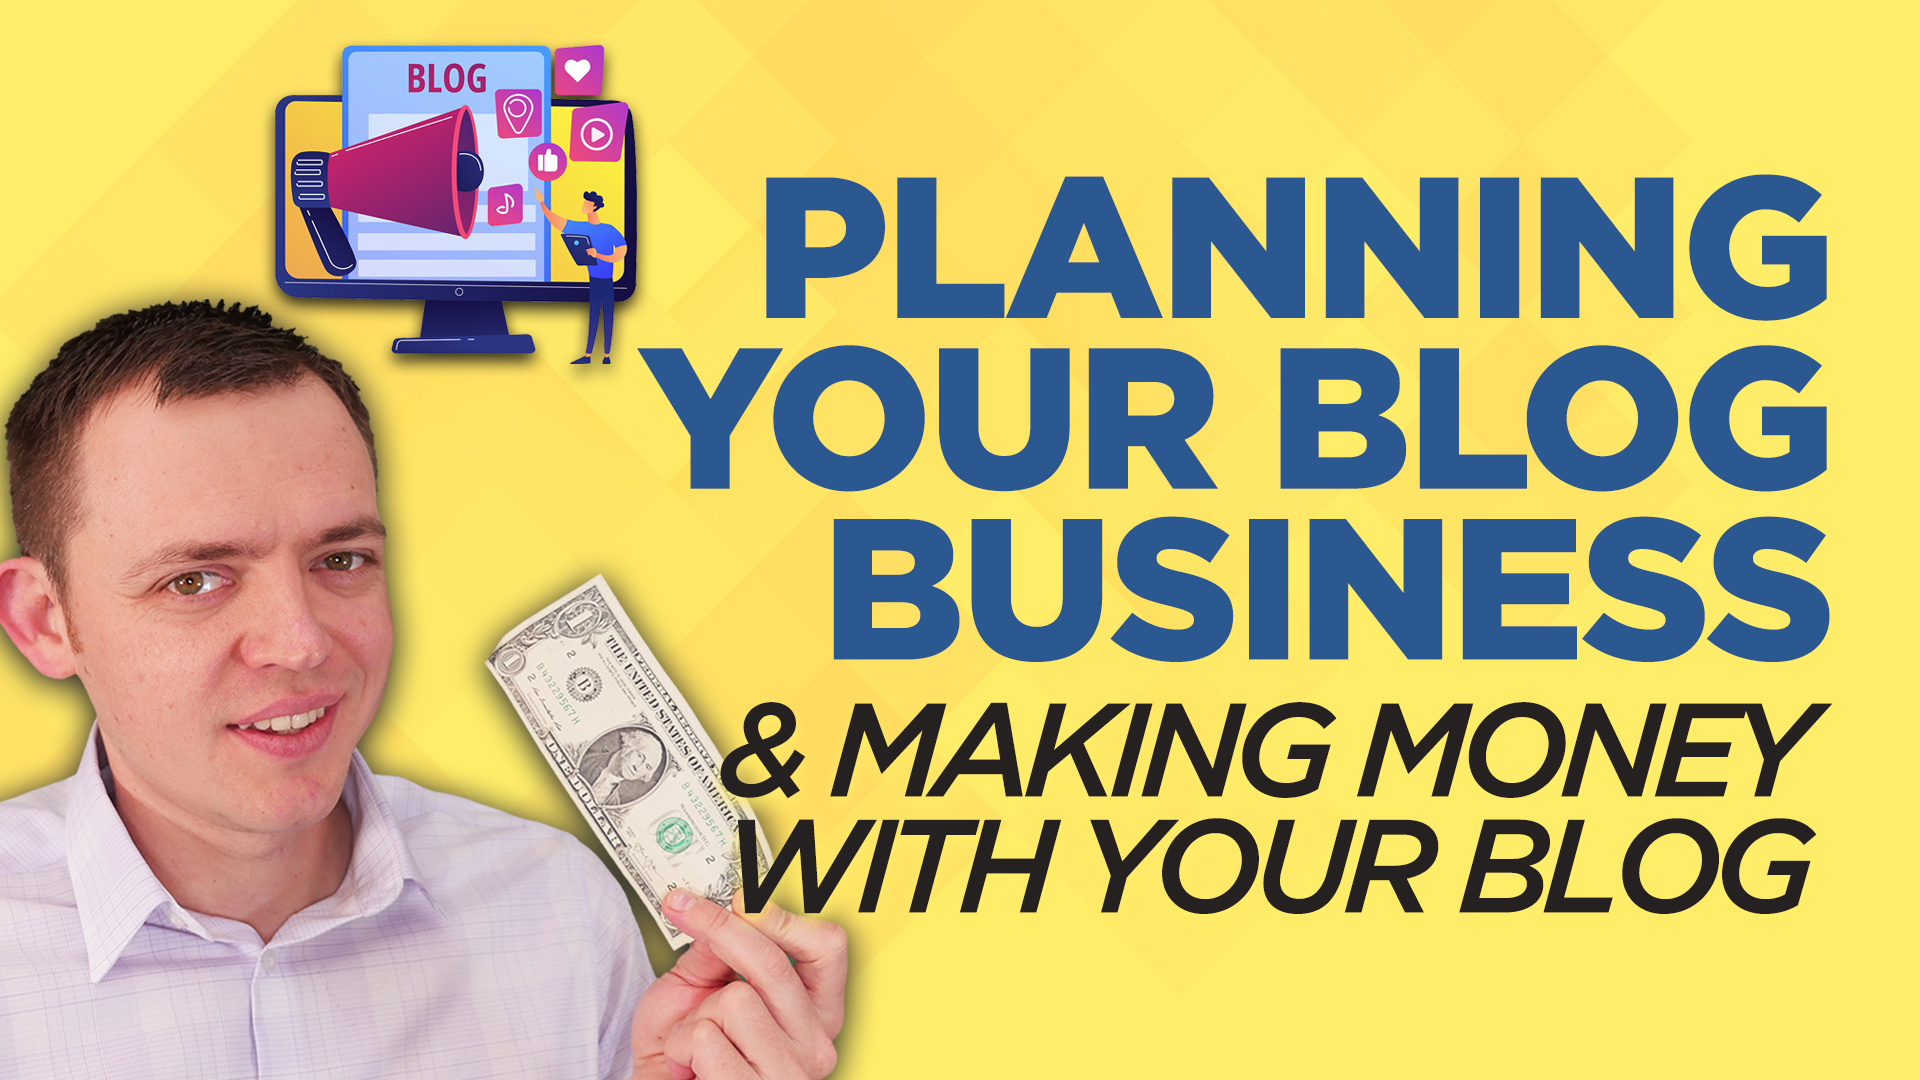 Planning a Blog Business and Make Money with Your Blog ⏰ Sale Reminder